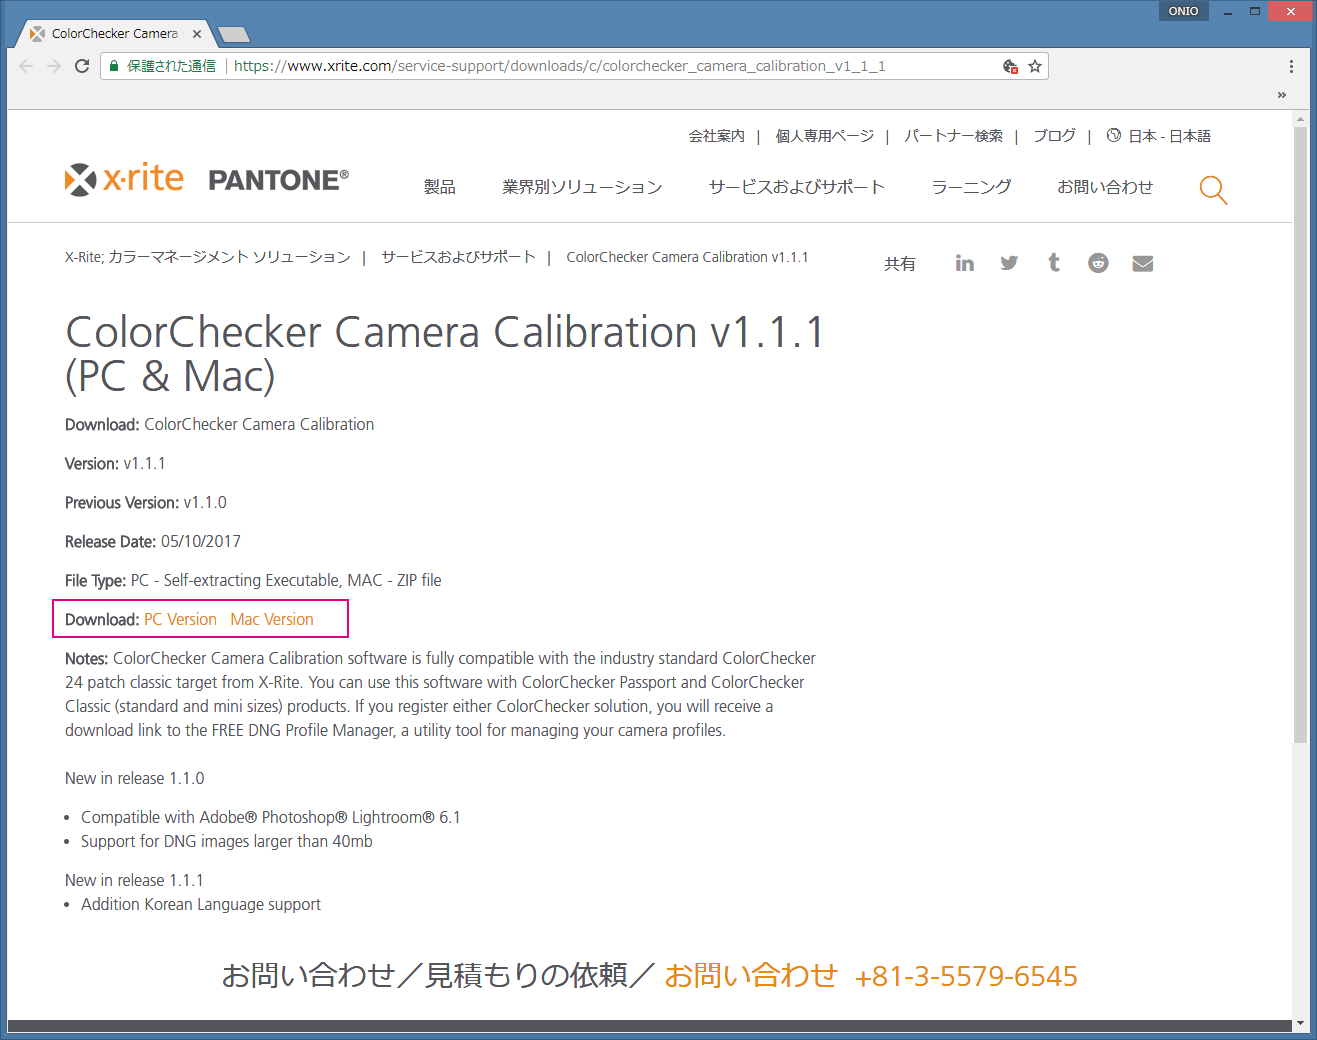 Color_Checker_Camera_Calibration_DL